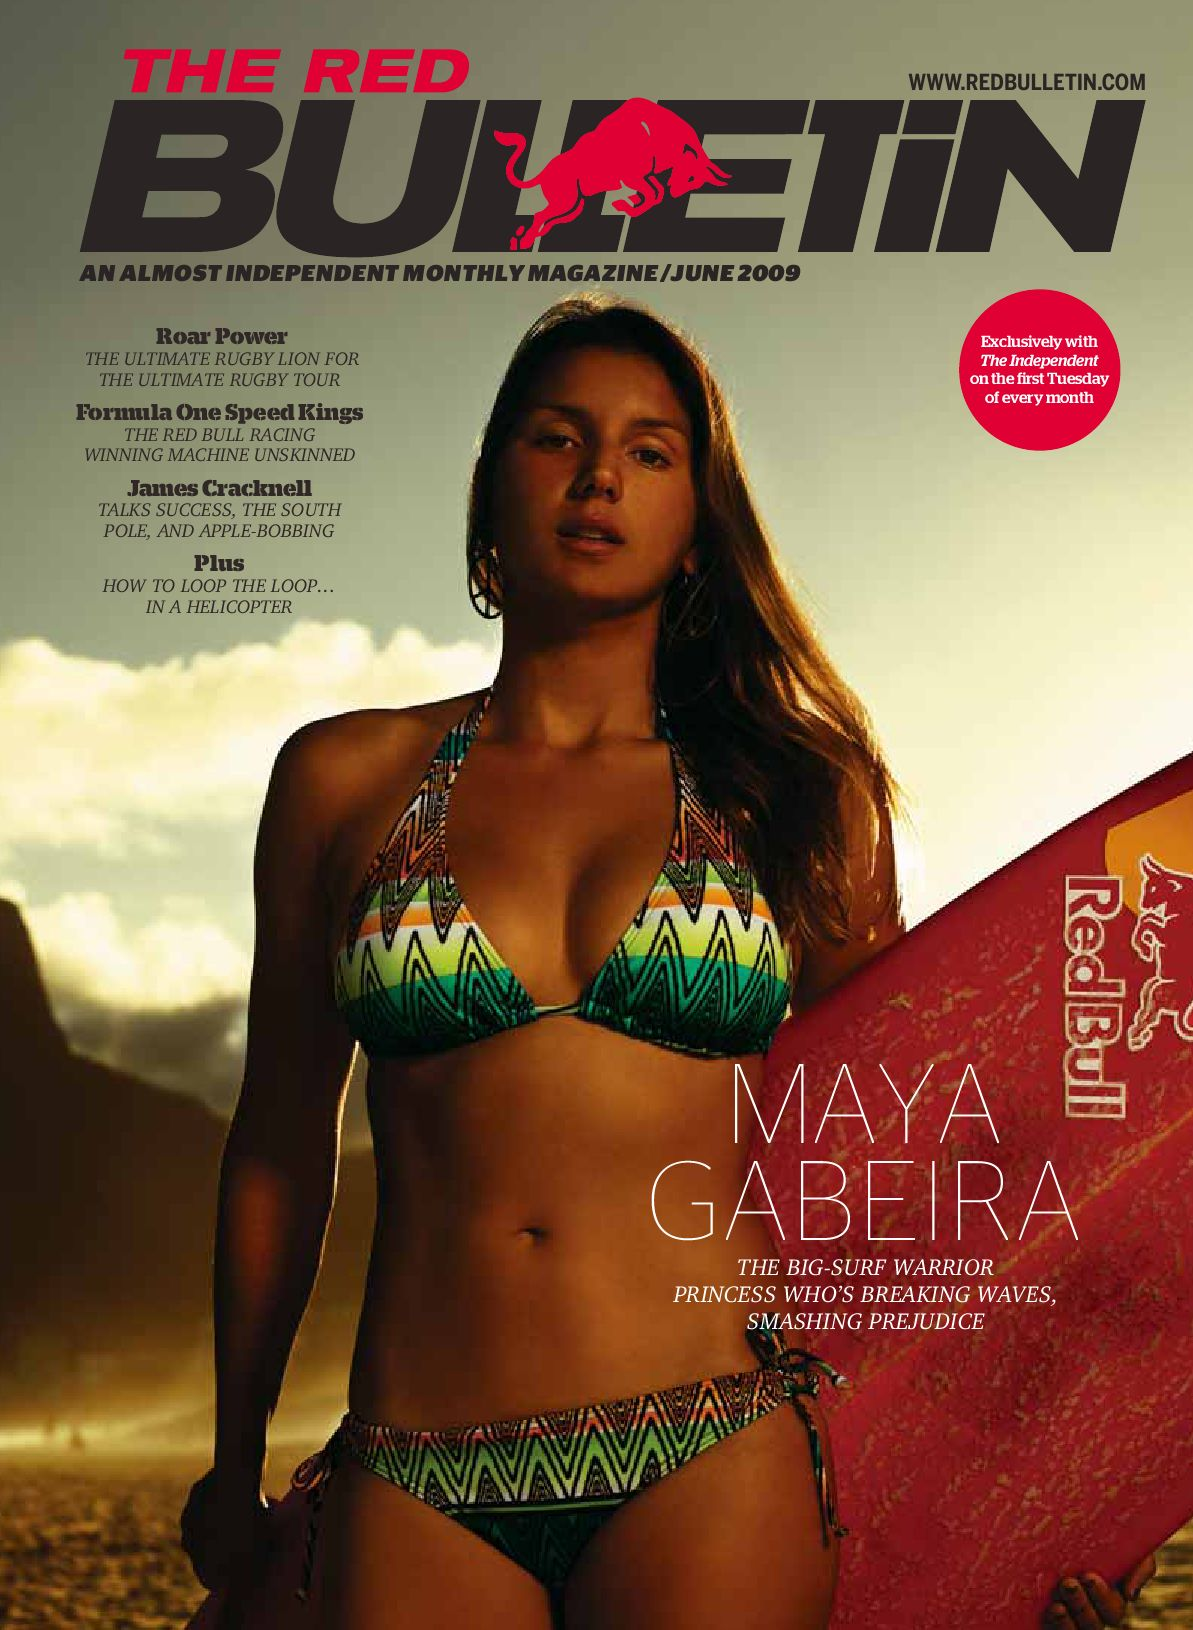 e07d3f2cc4 The Red Bulletin_0609_UK by Red Bull Media House - issuu